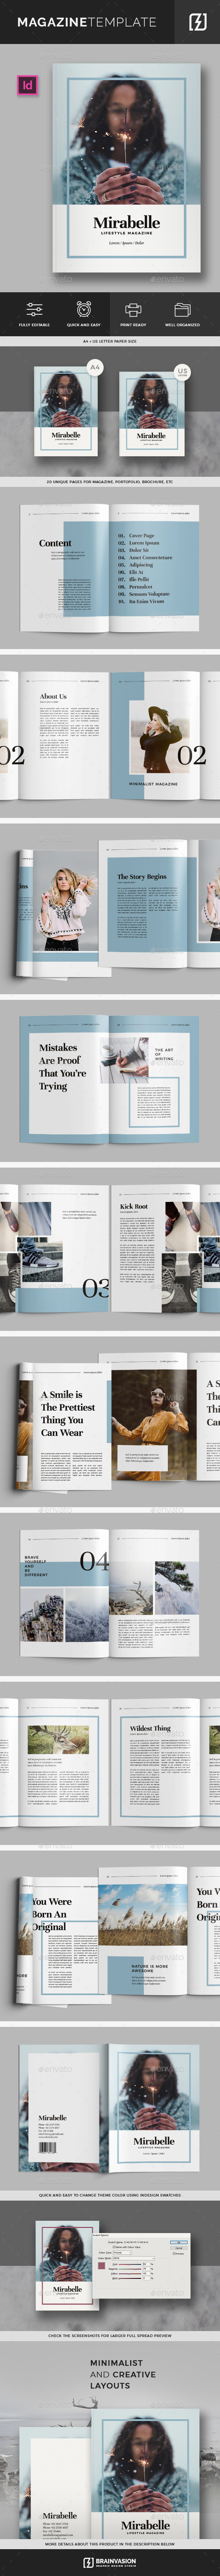 Magazine Template Vol.02 - Magazines Print Templates